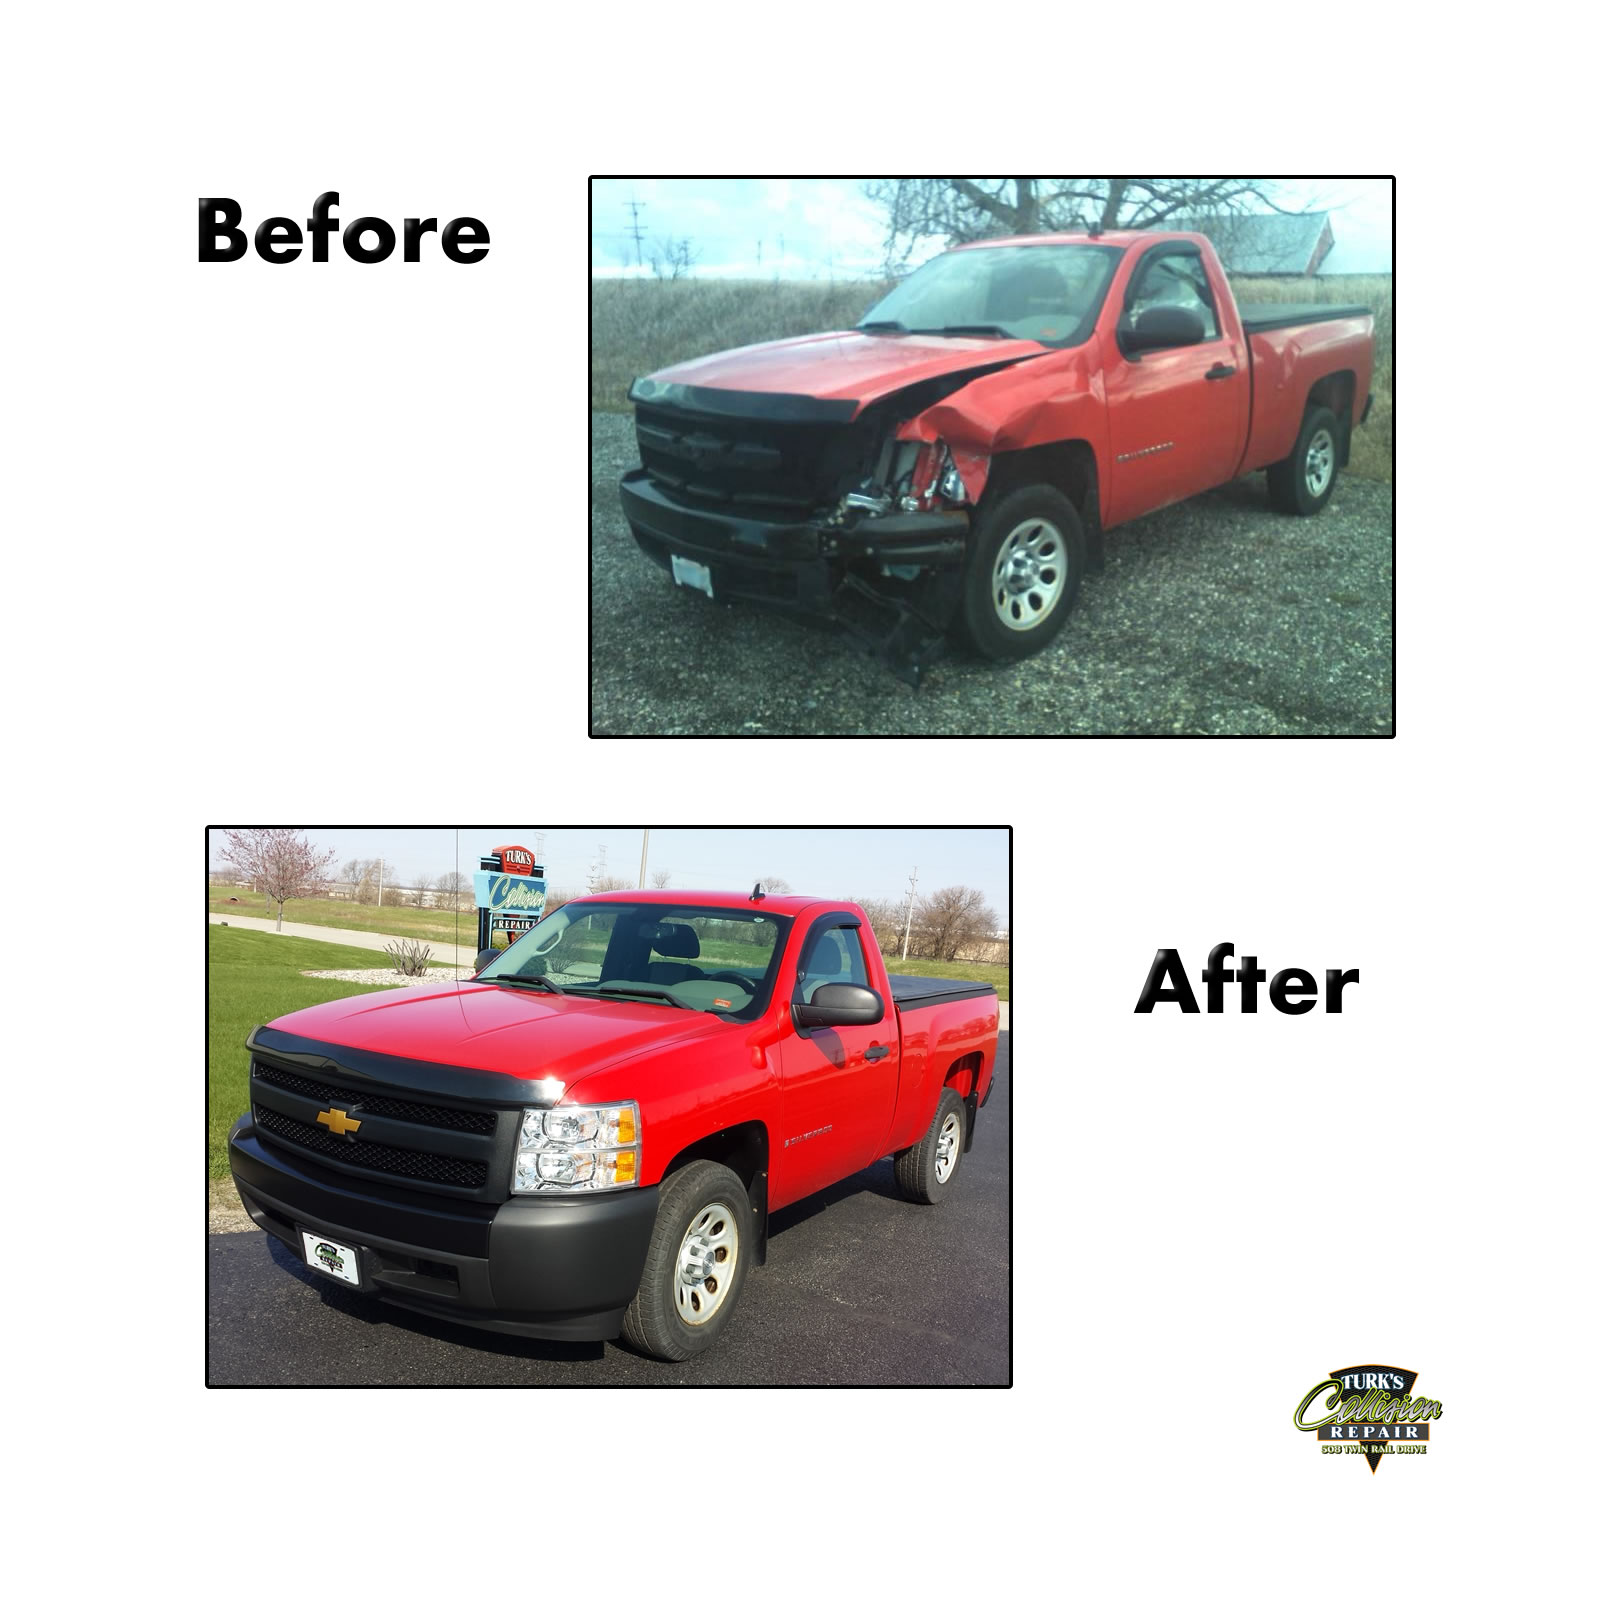 auto collision repair Need a place that can take restore your car's appearance paul's collision repair in fort worth, tx can help top rated auto collision repair call now.